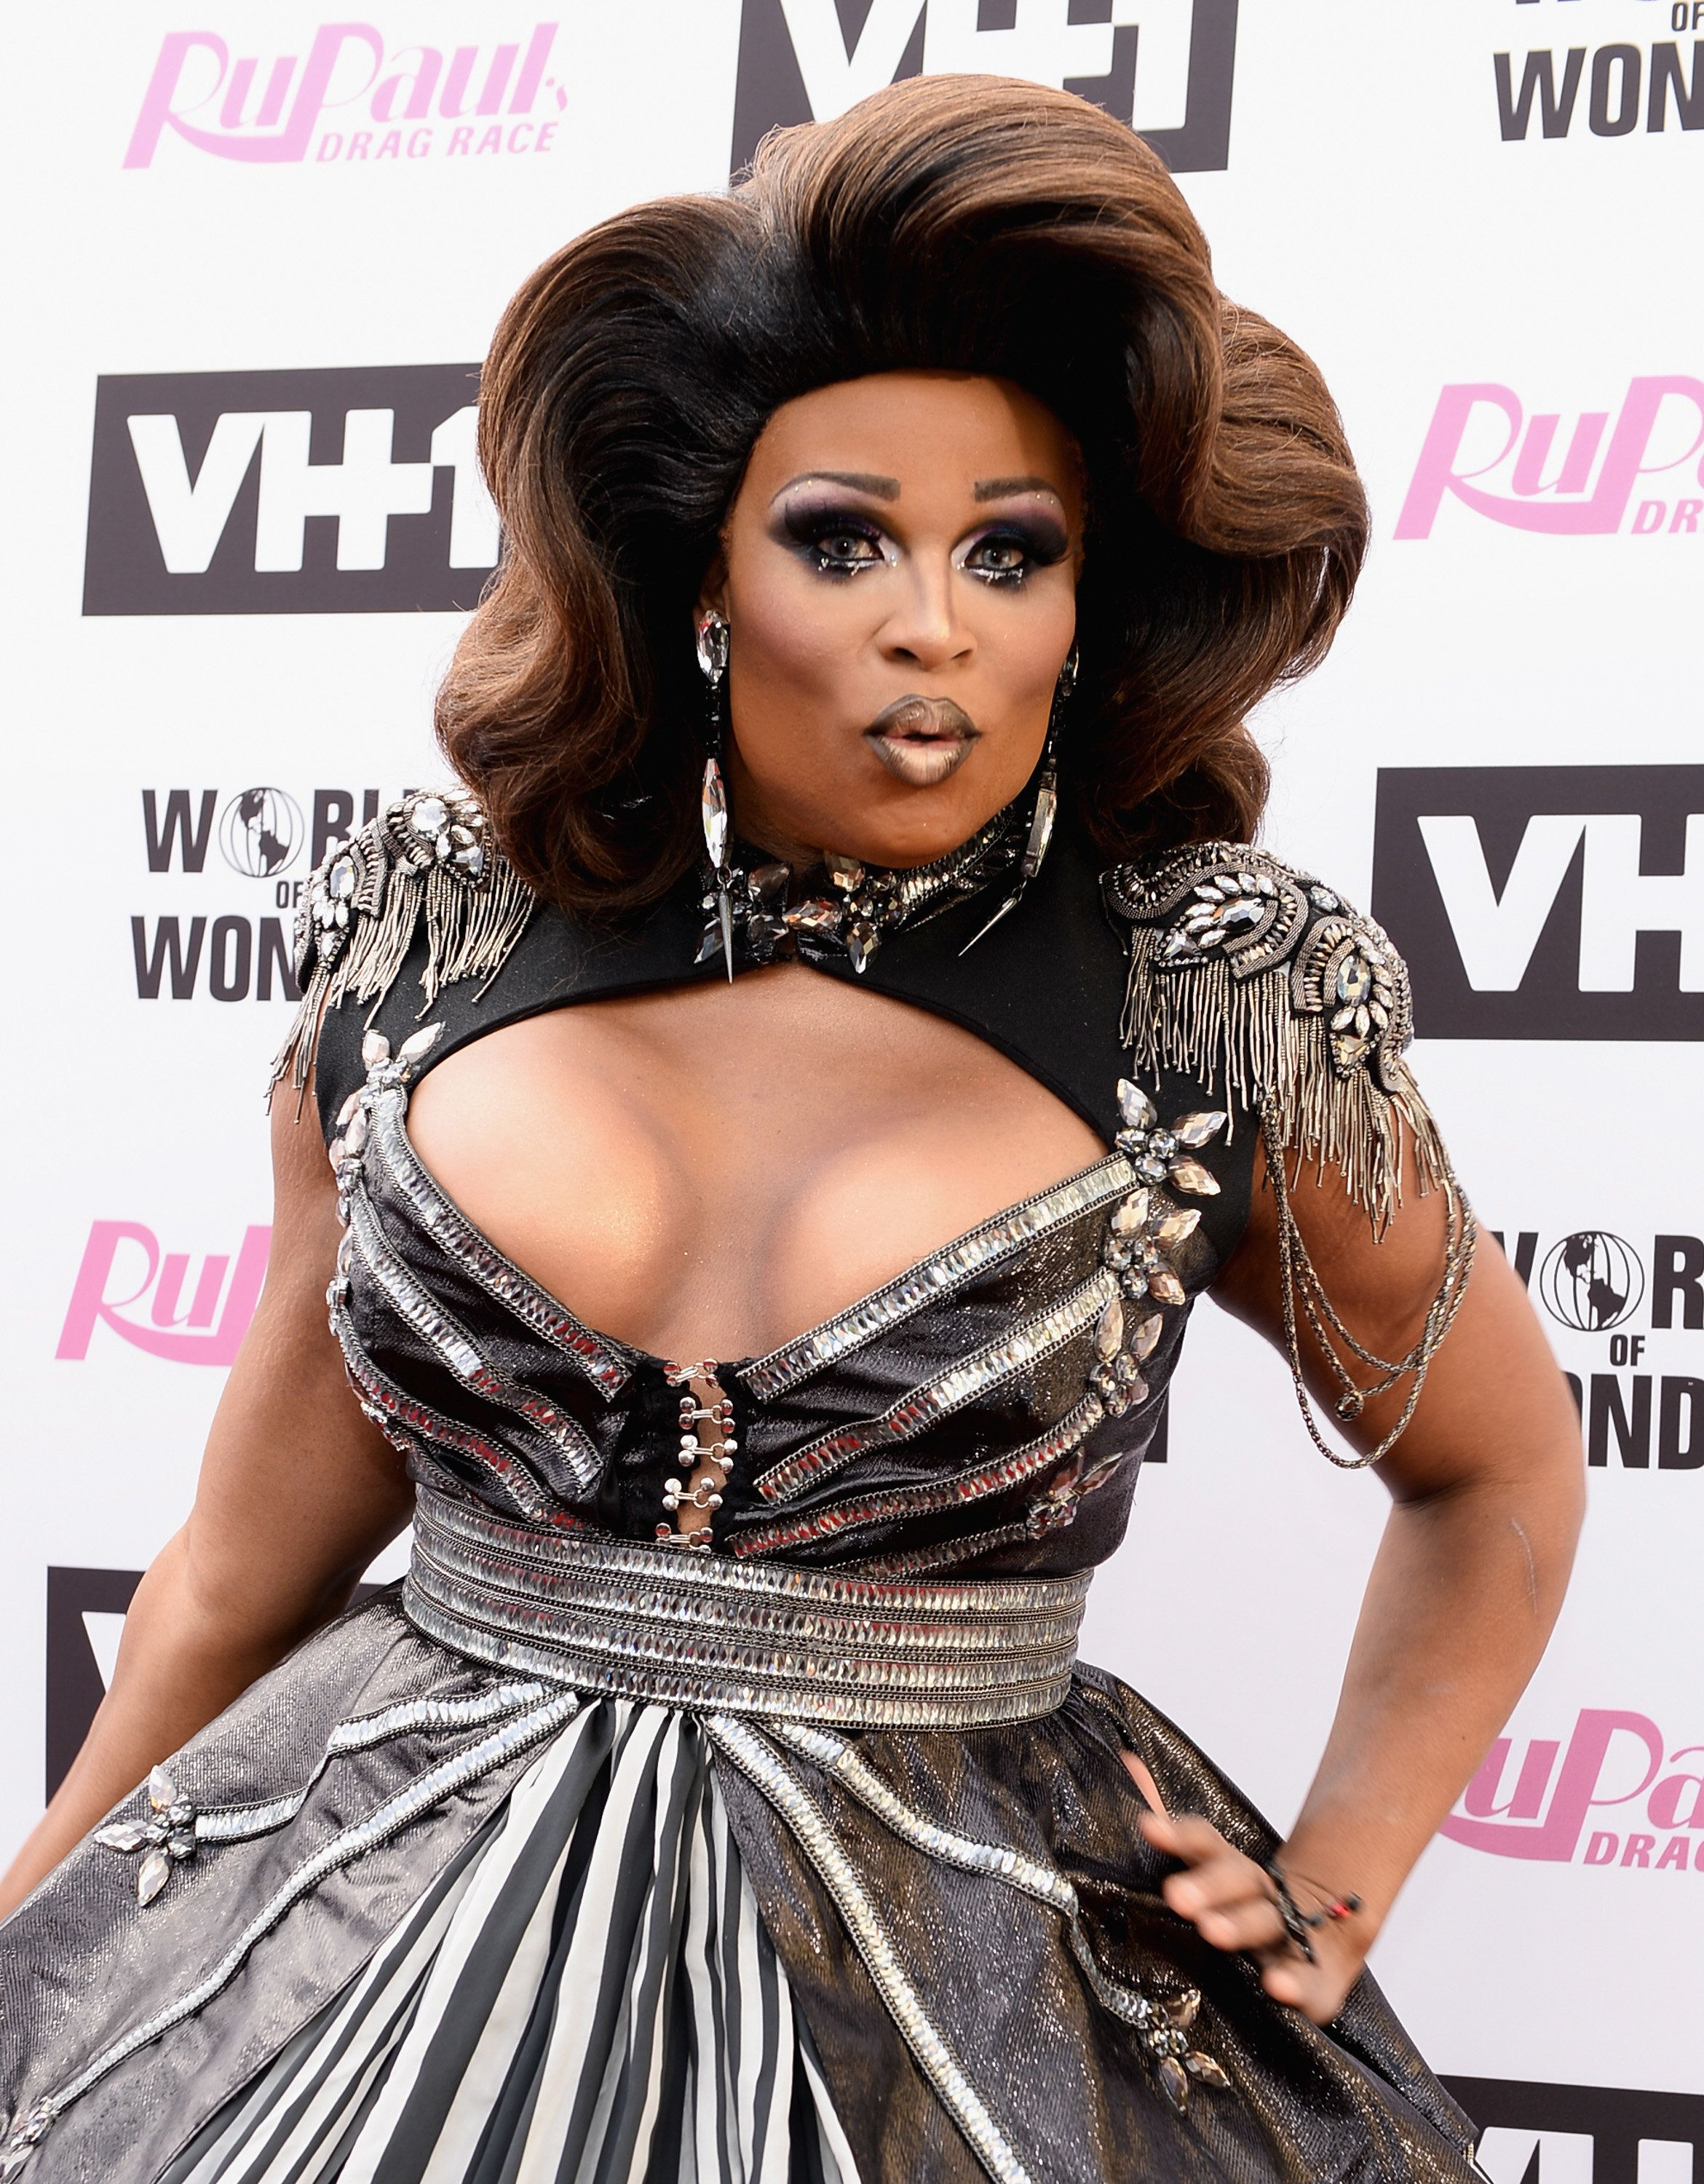 GLENDALE, CA - JUNE 09:  Peppermint  arrives at 'RuPaul's Drag Race' Season 9 Finale Taping at Alex Theatre on June 9, 2017 in Glendale, California.  (Photo by Tara Ziemba/Getty Images)